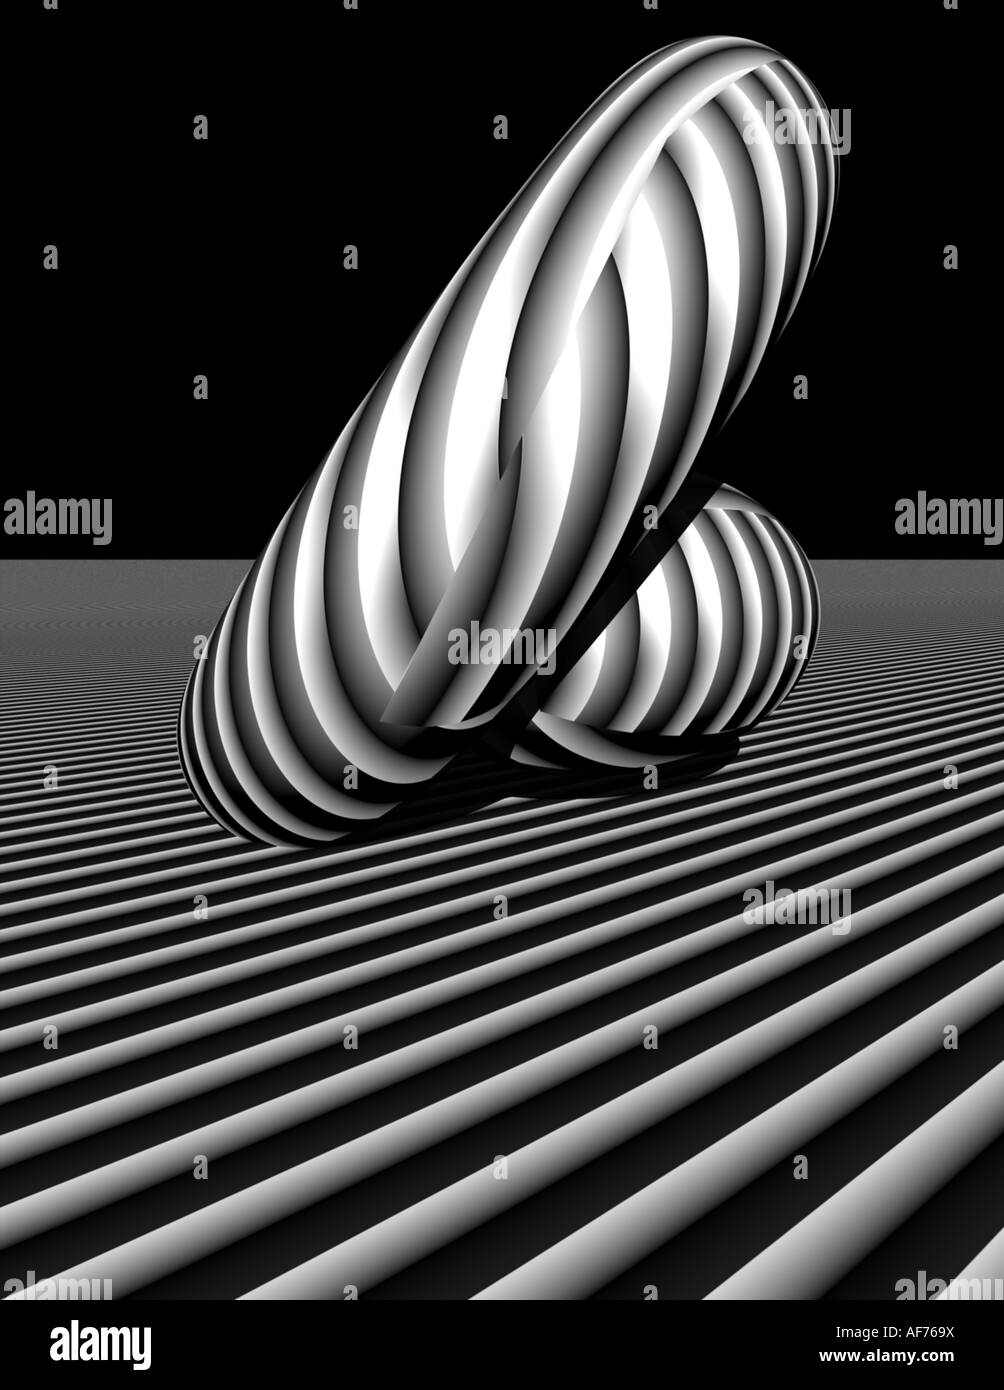 3d rendered image of primitive shapes in black and white stripes - Stock Image